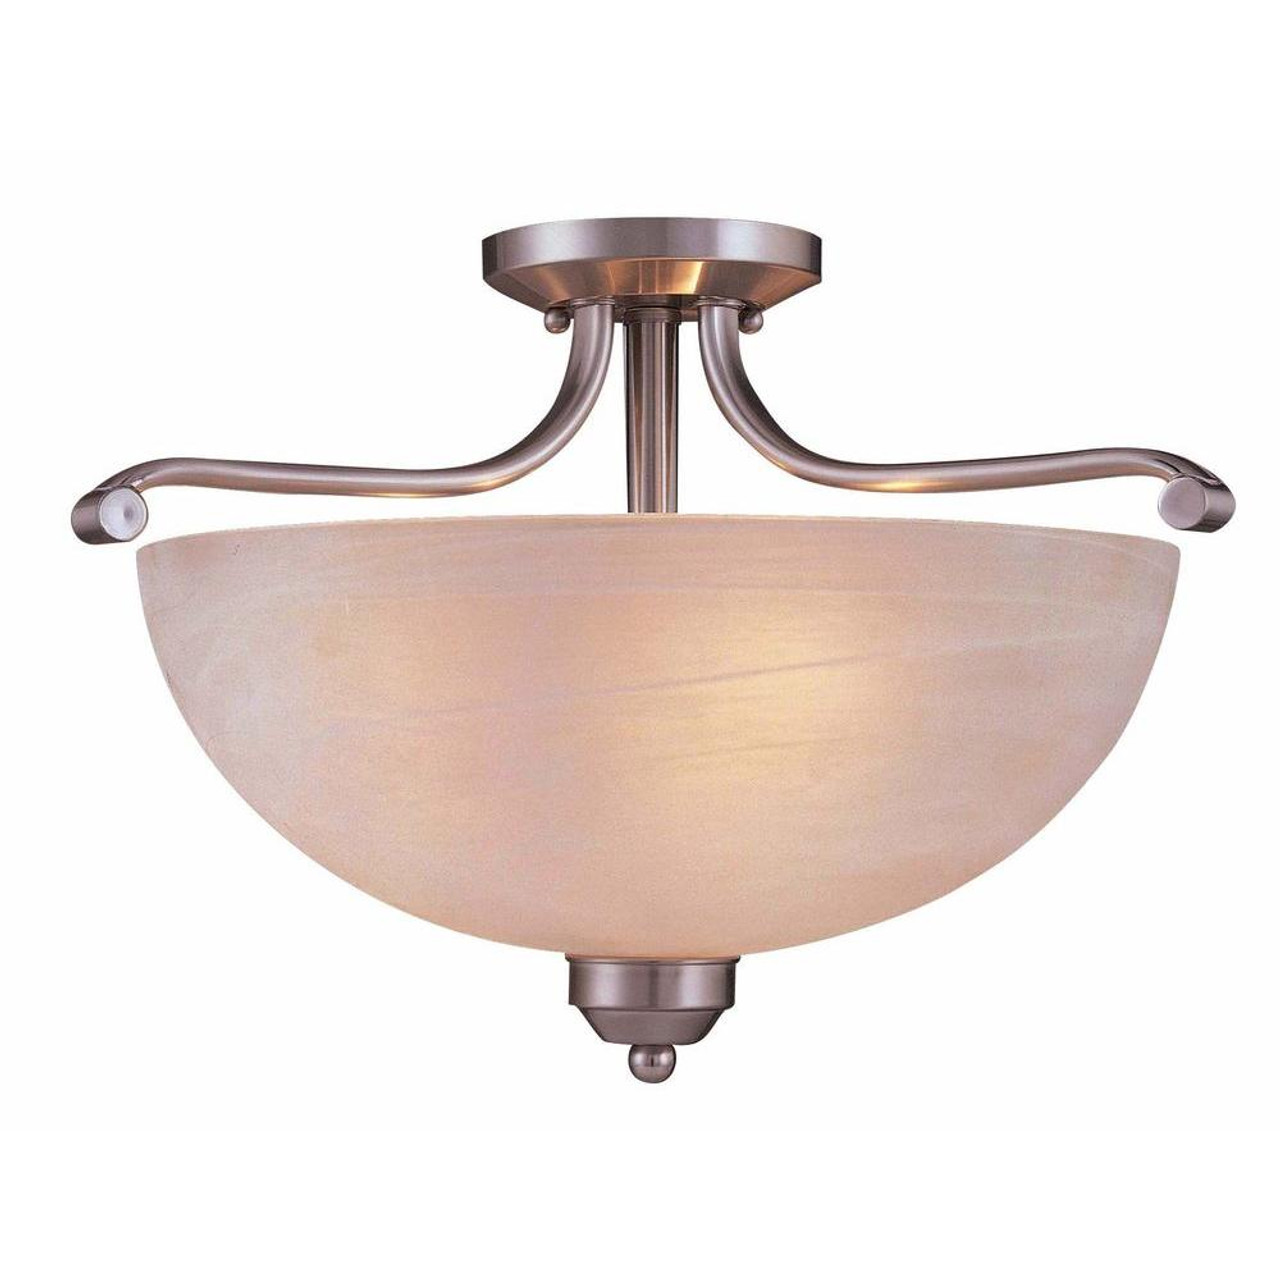 "Minka Lavery Paradox Light, 14.75"" Semi Flush Mount, Brushed Nickel with Etched Marble Glass shade, 120V, 3 Bulb Incandescent, E26 Base (1424-84)-3000 kelvin LED Bulbs"